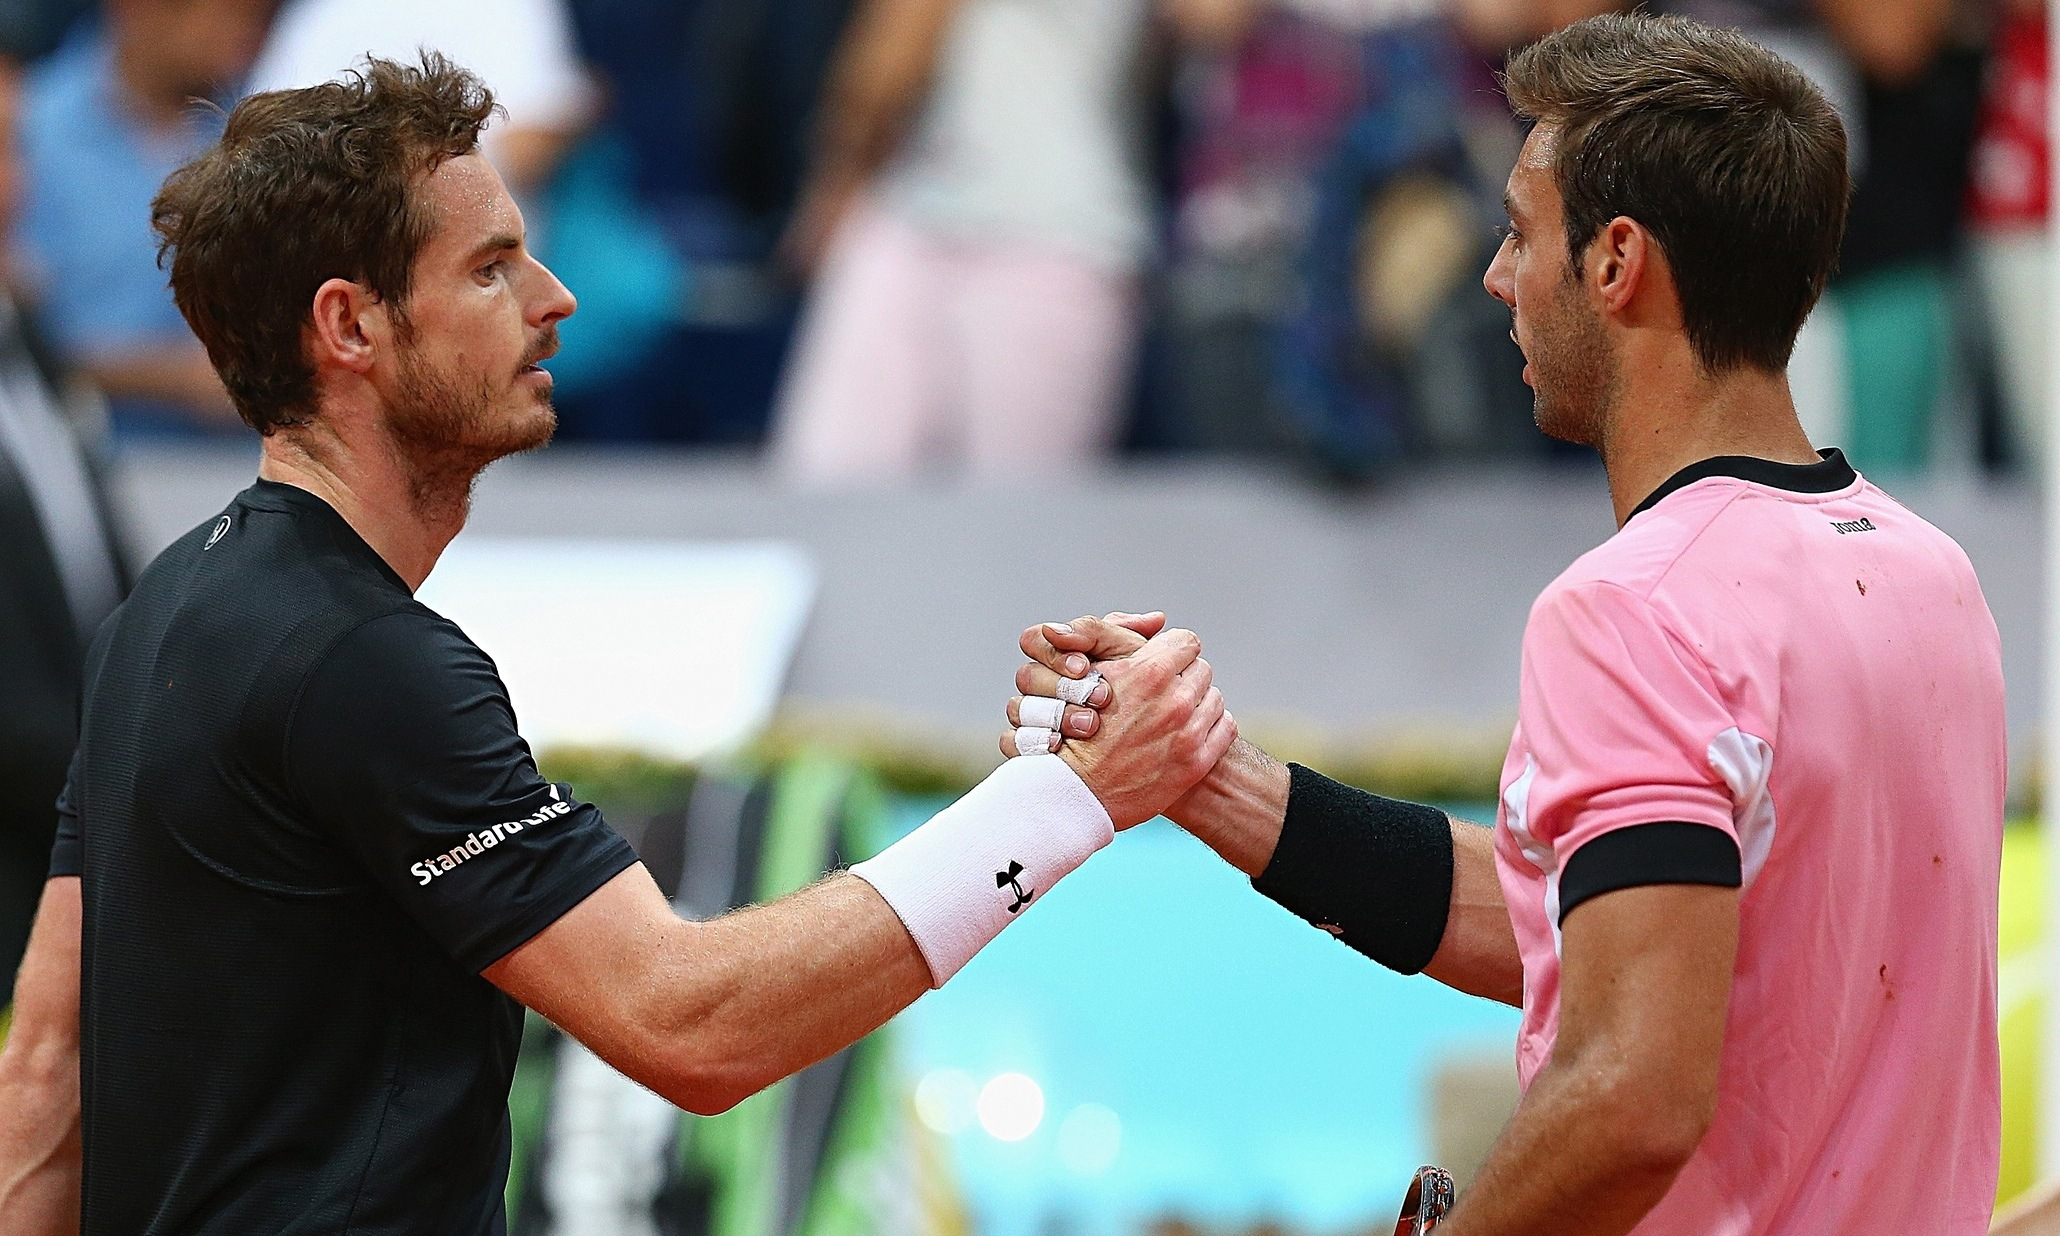 Andy Murray beats marcel granollers for 2015 madrid open quarter finals